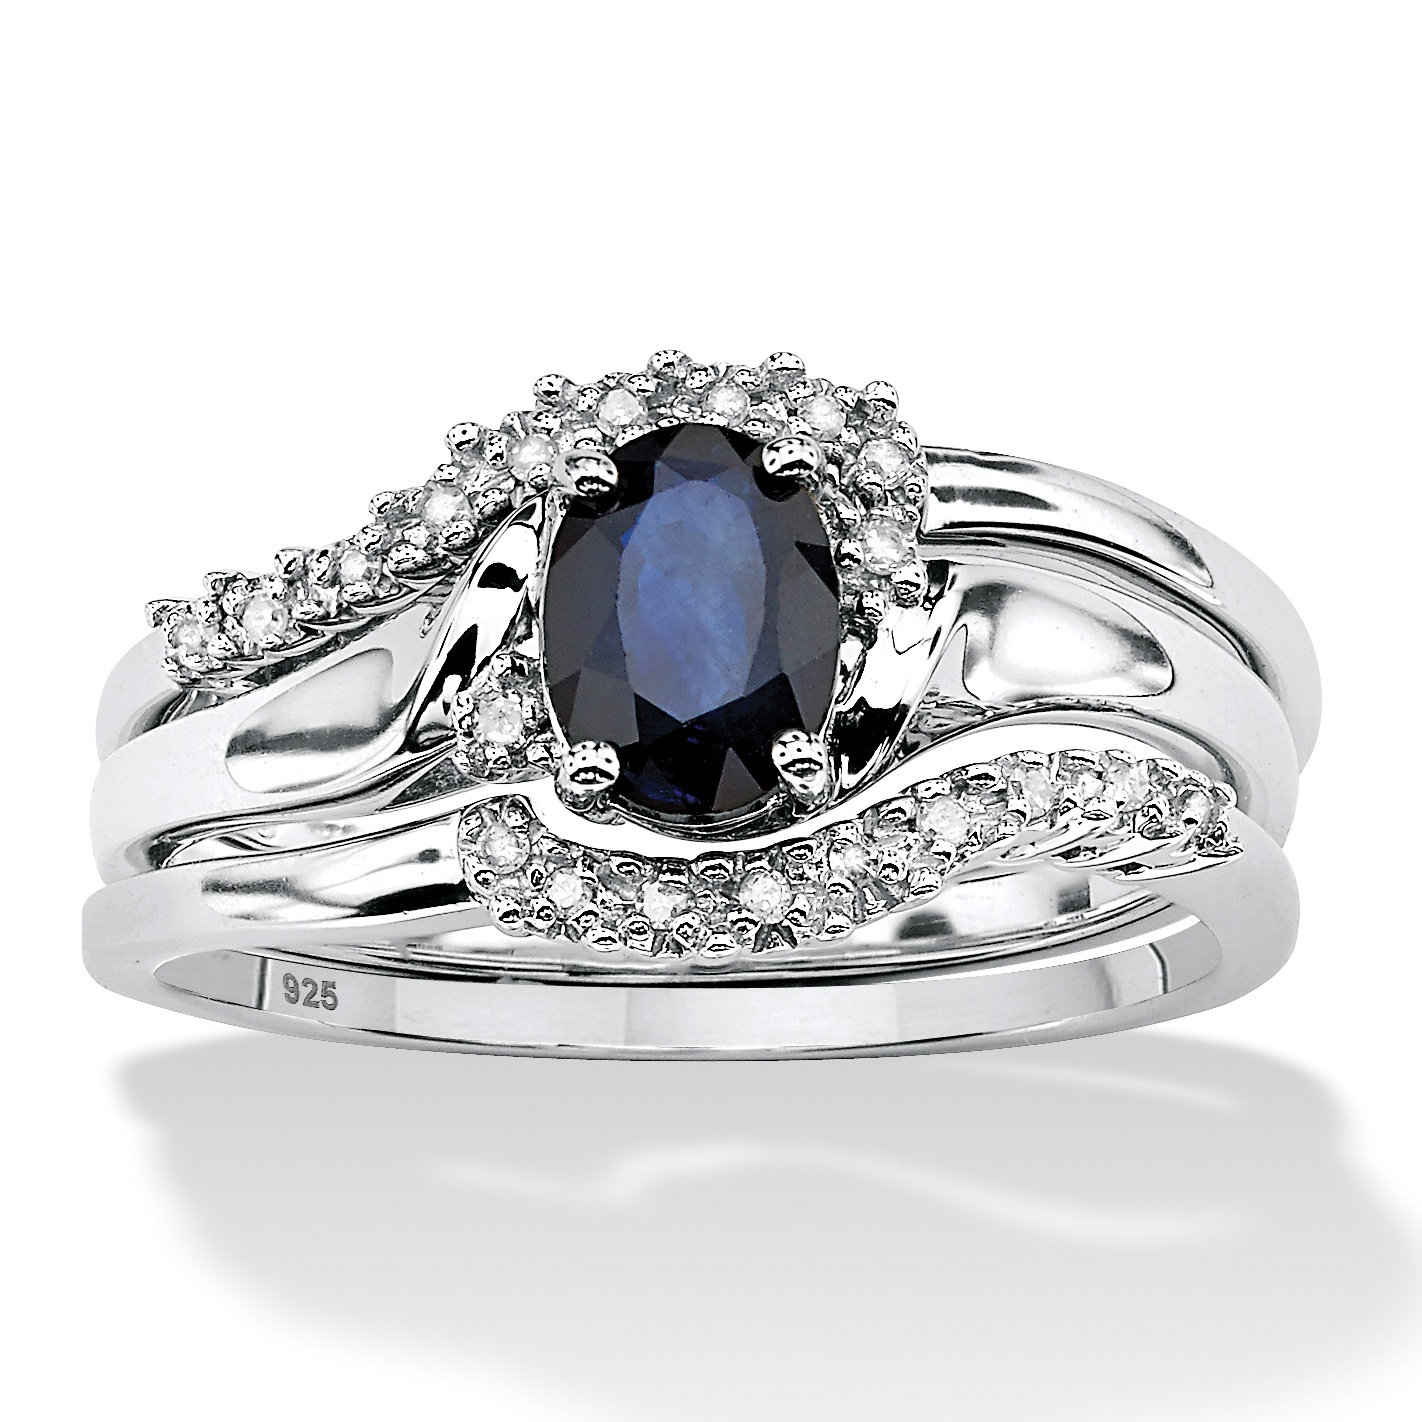 set ring sapphire rings engagement matching wedding cz couple and photo hers his blue medium titanium itm